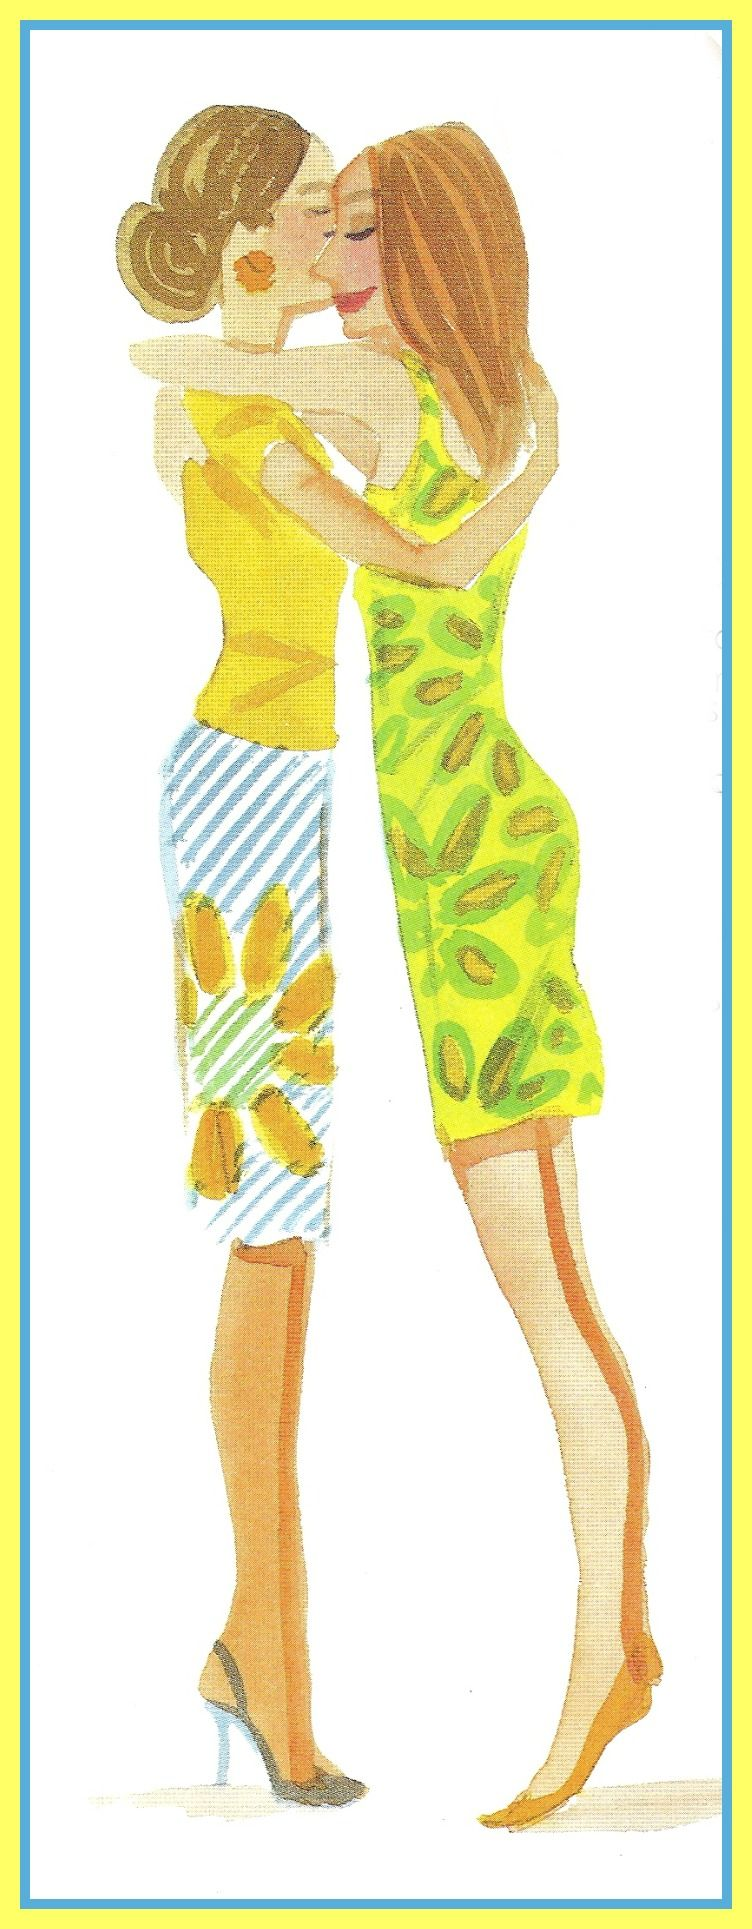 Lilly Pulitzer mom and daughter illustration by Izak Zenou.